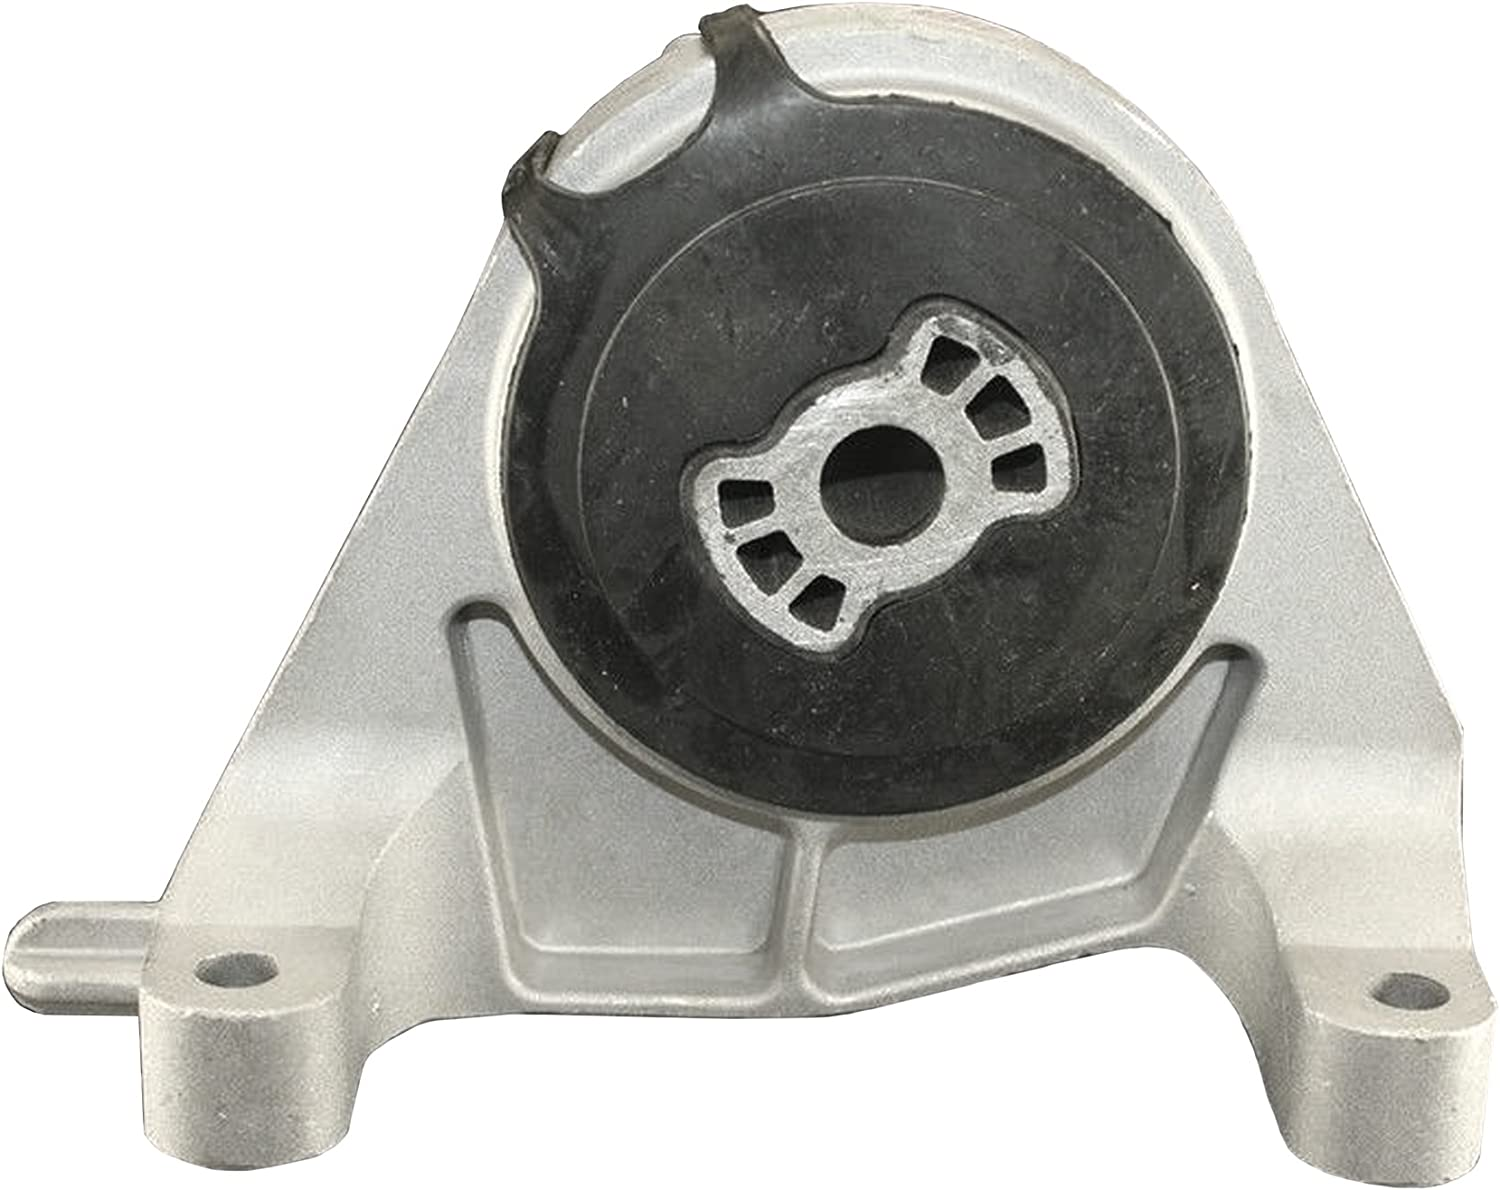 Equinox 3.6L /& Torrent 3.6L Rear Right Side Engine Mount